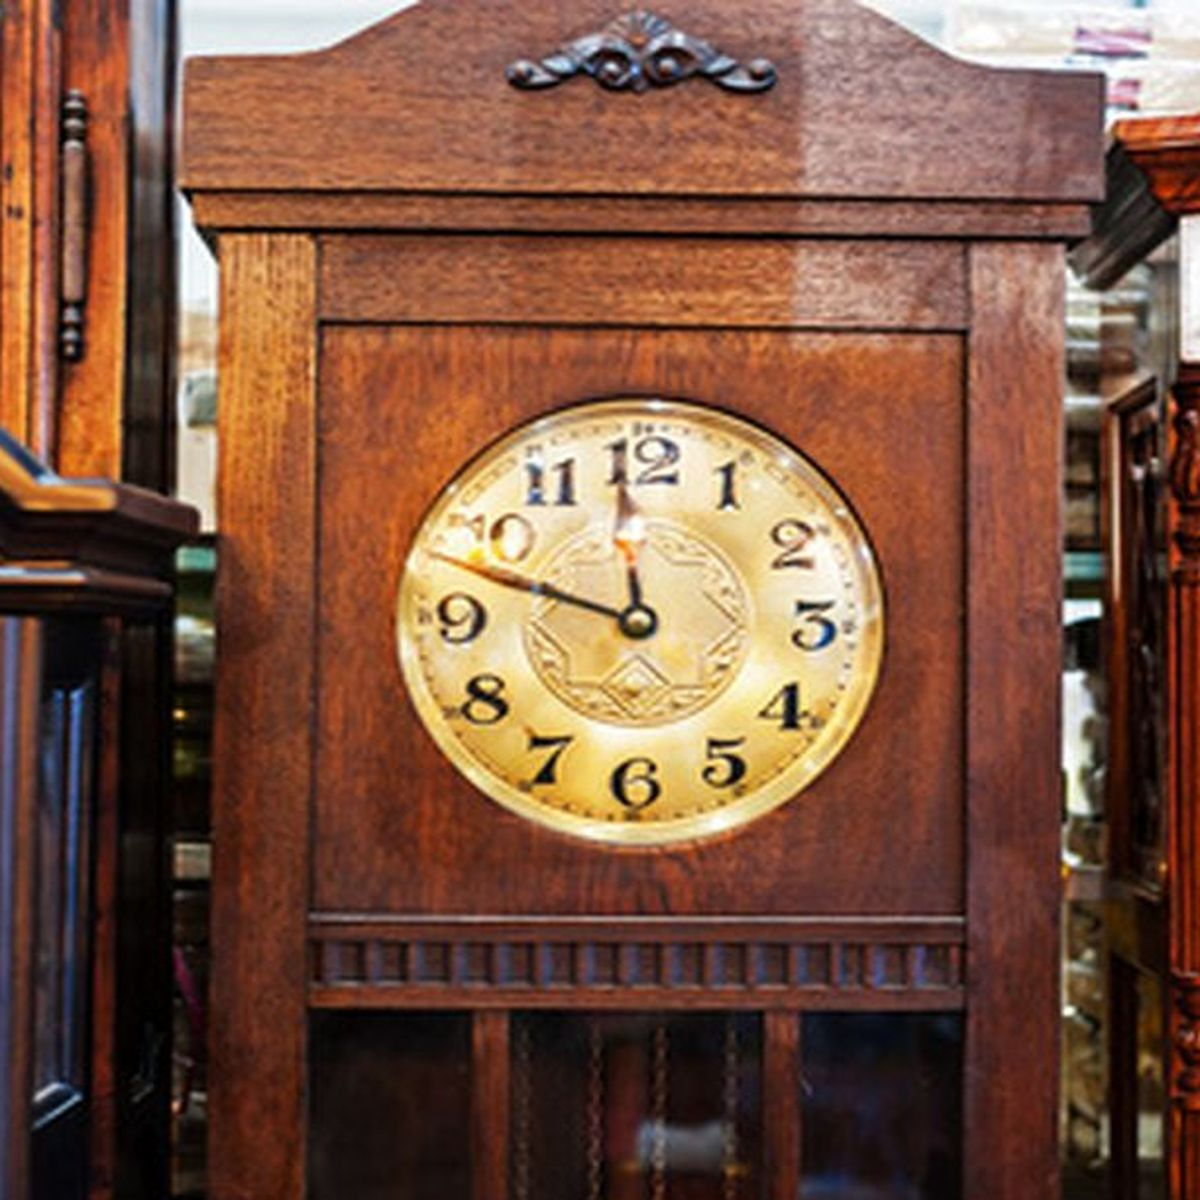 Things to Look for When Repairing a Grandfather Clock